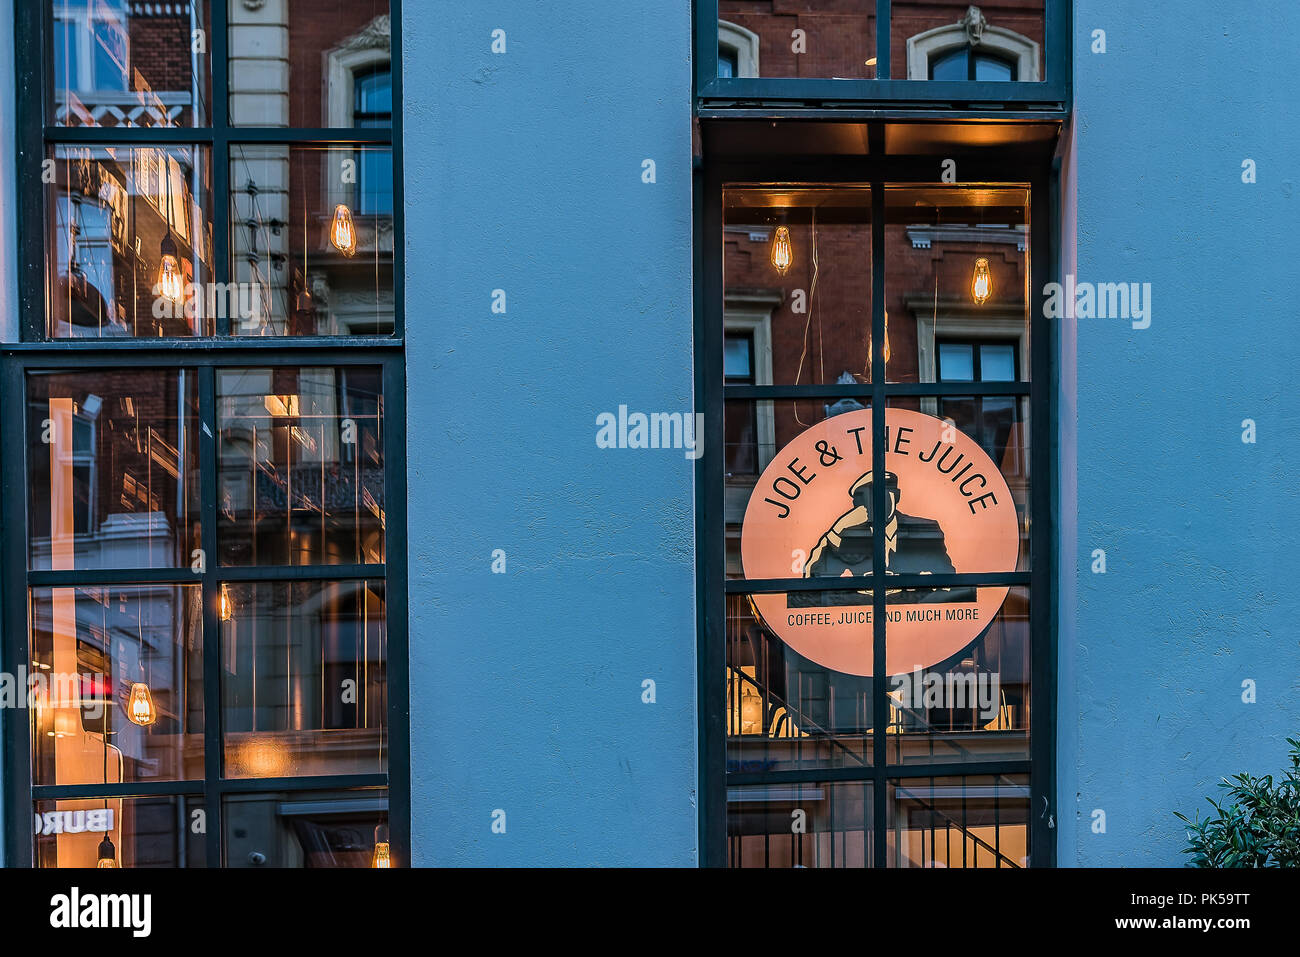 Reflections at night in the windows of the coffe-shop Joe & the juice in Copenhagen, September 6, 2018 - Stock Image